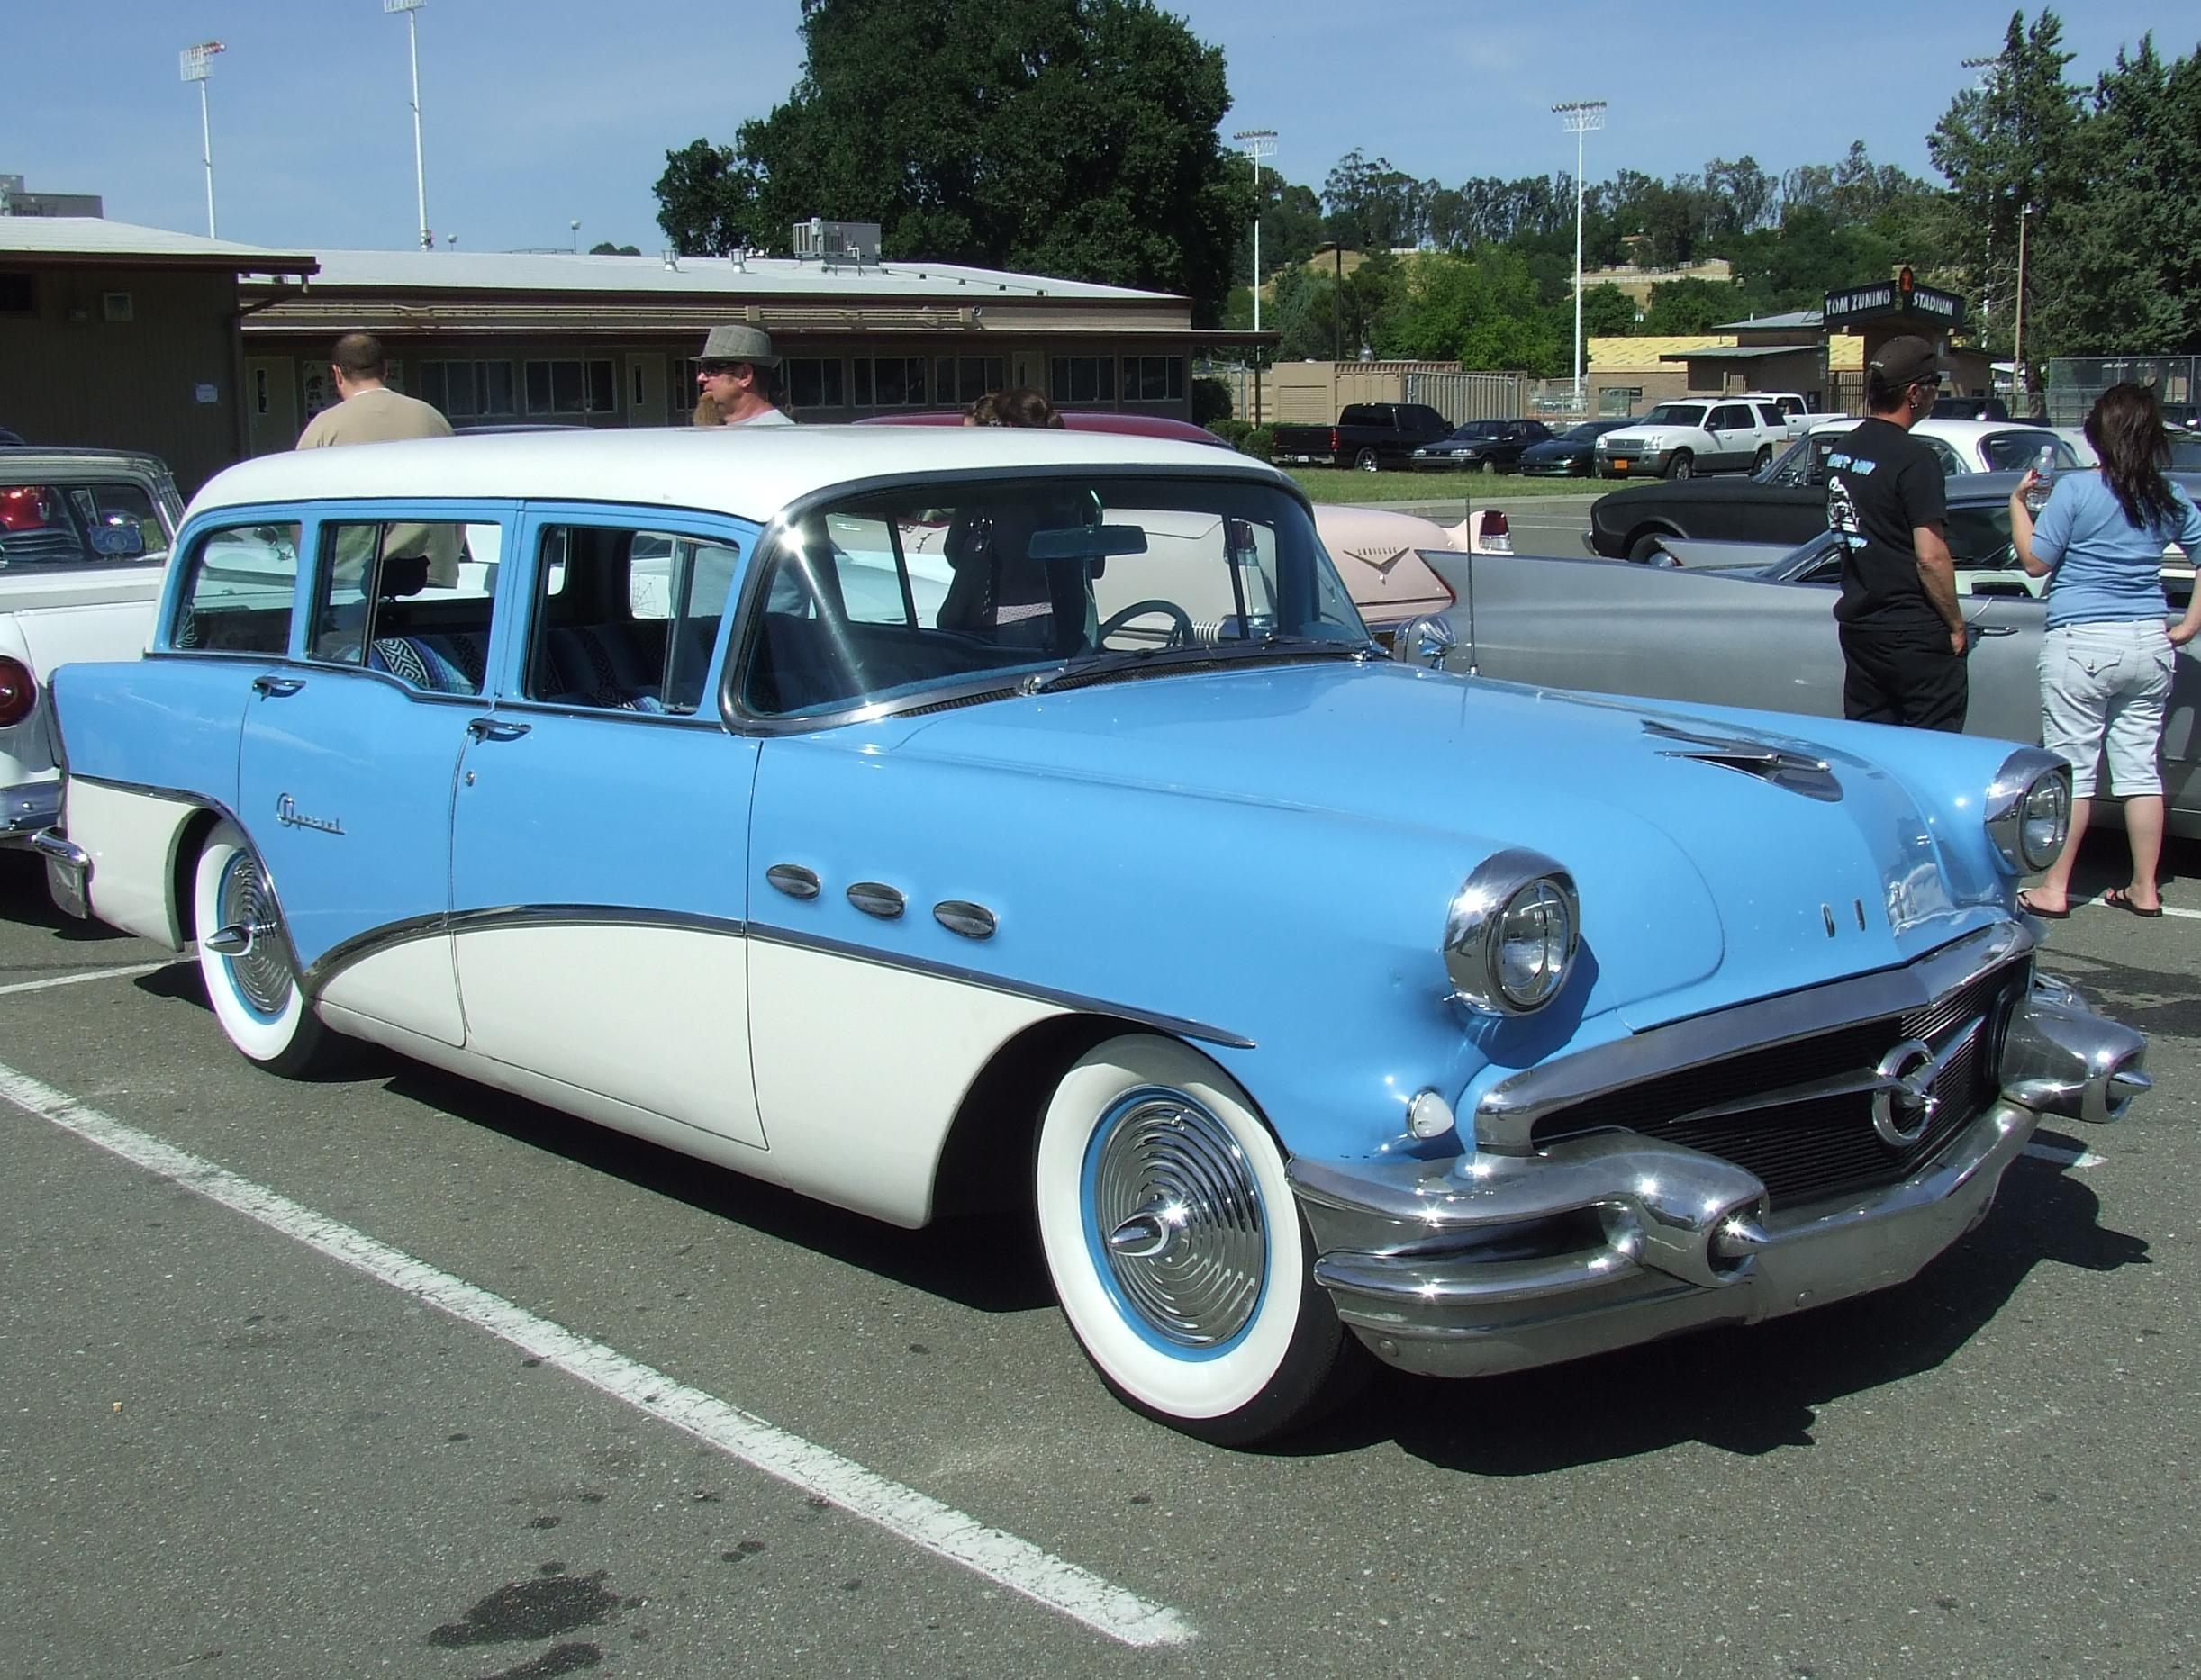 1956 Buick Special Station Wagon 'BHH 532' 1 | Flickr - Photo Sharing!